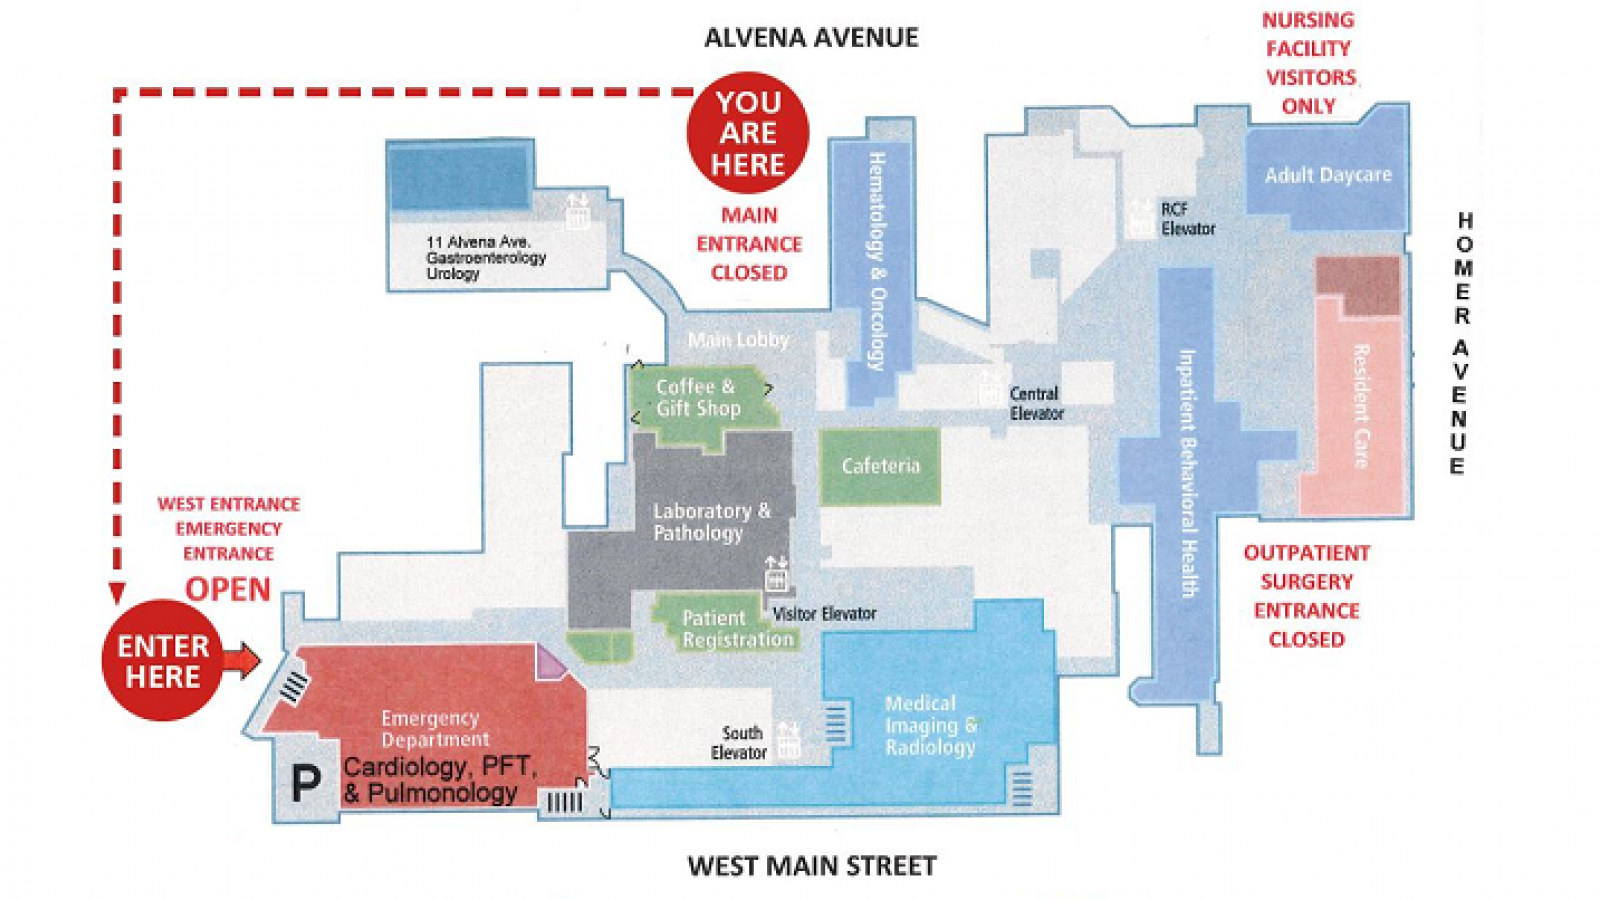 Map of new entrance